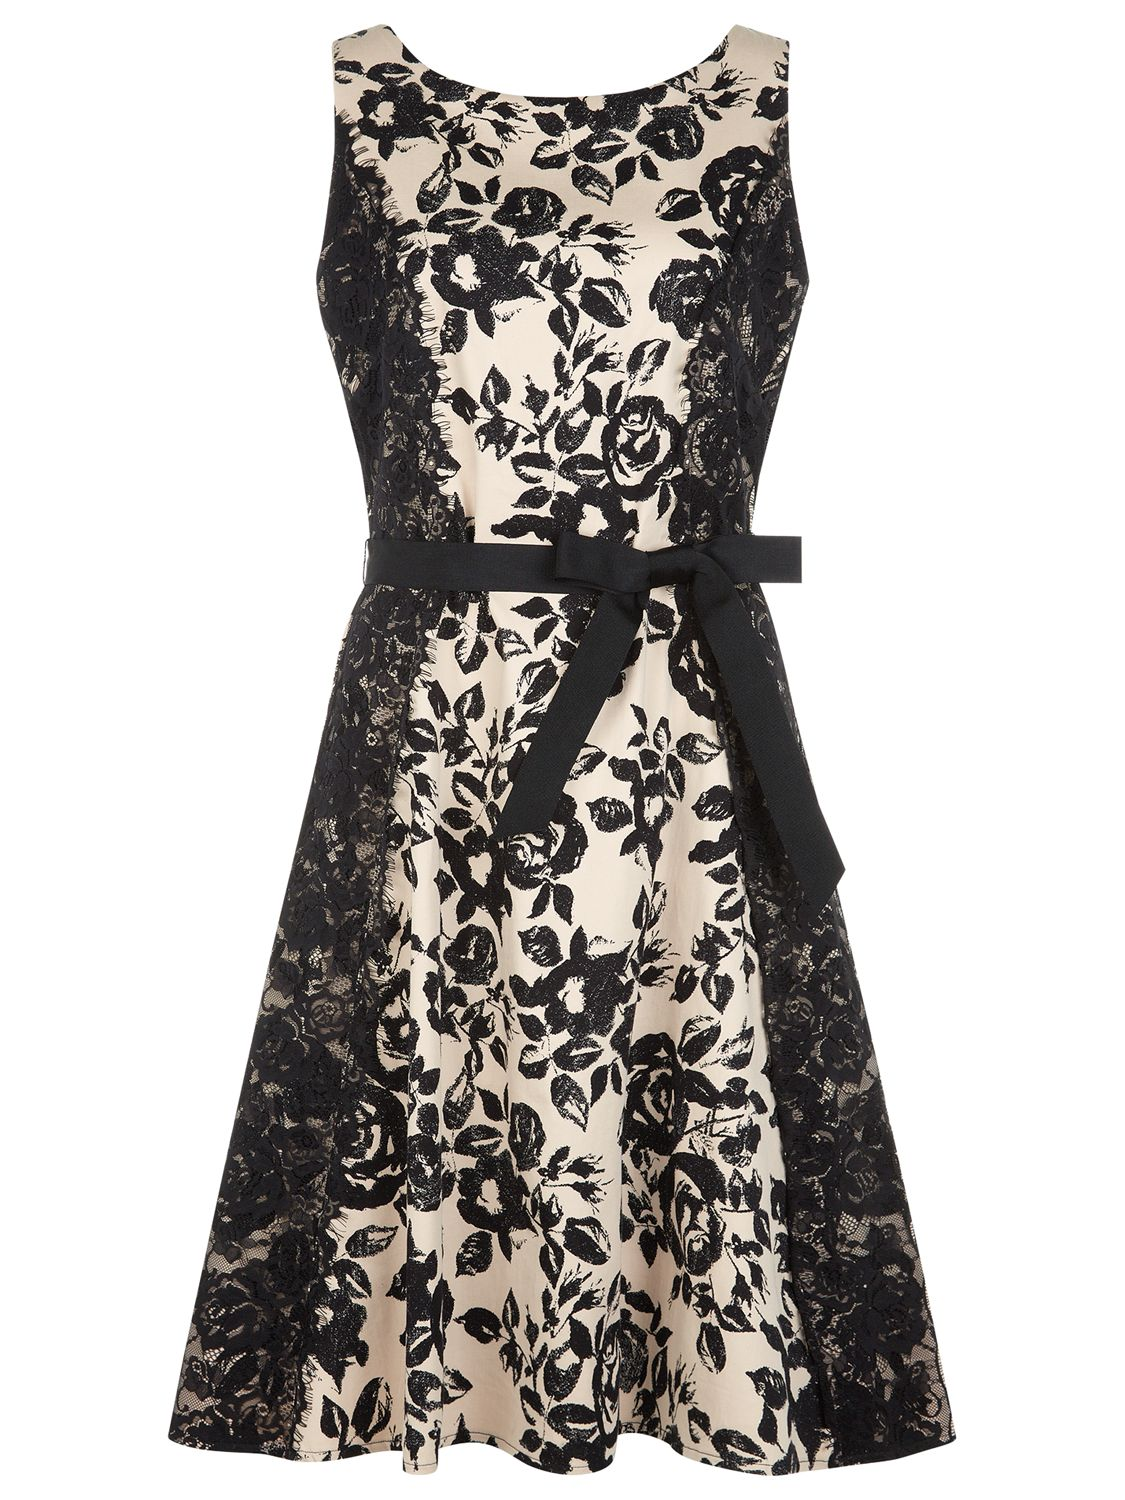 kaliko lace panel printed prom dress multi black, kaliko, lace, panel, printed, prom, dress, multi, black, 8|10|18|16|14, clearance, womenswear offers, womens dresses offers, special offers, 20% off selected kaliko, new years party offers, women, inactive womenswear, new reductions, womens dresses, party outfits, party dresses, 1759292